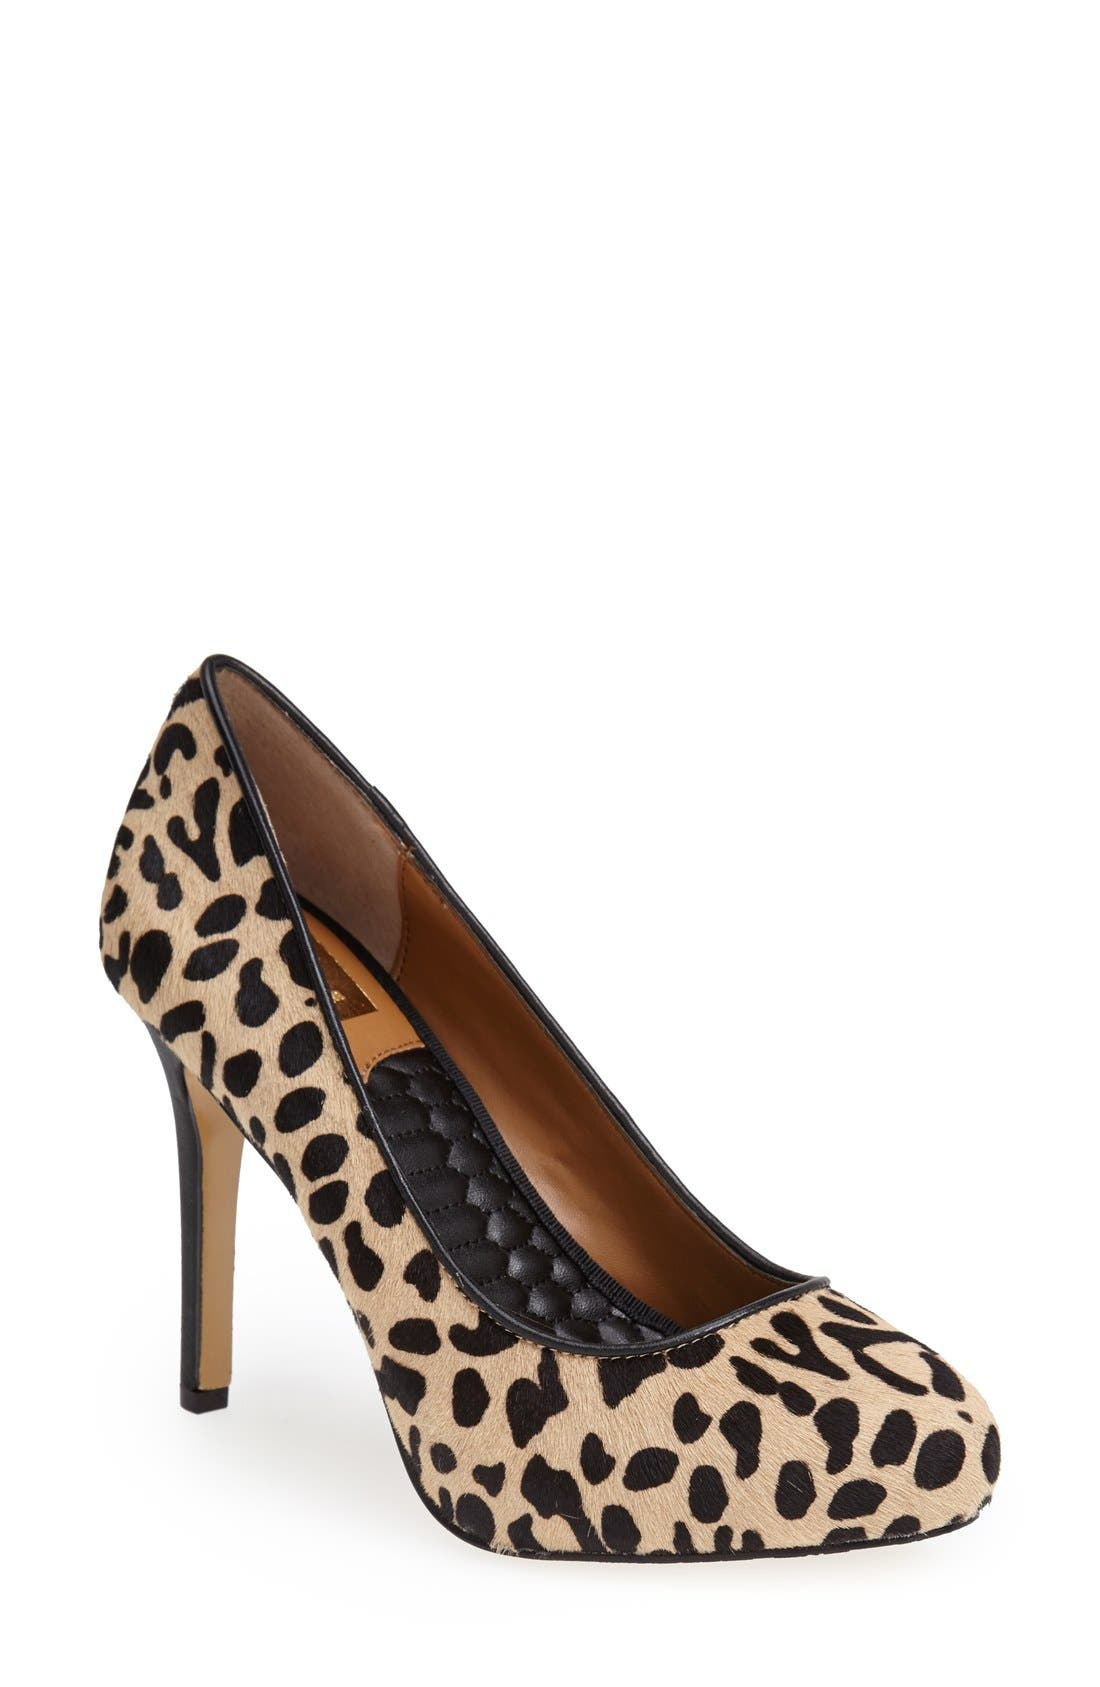 Alternate Image 1 Selected - DV by Dolce Vita 'Graysen' Pump (Women)